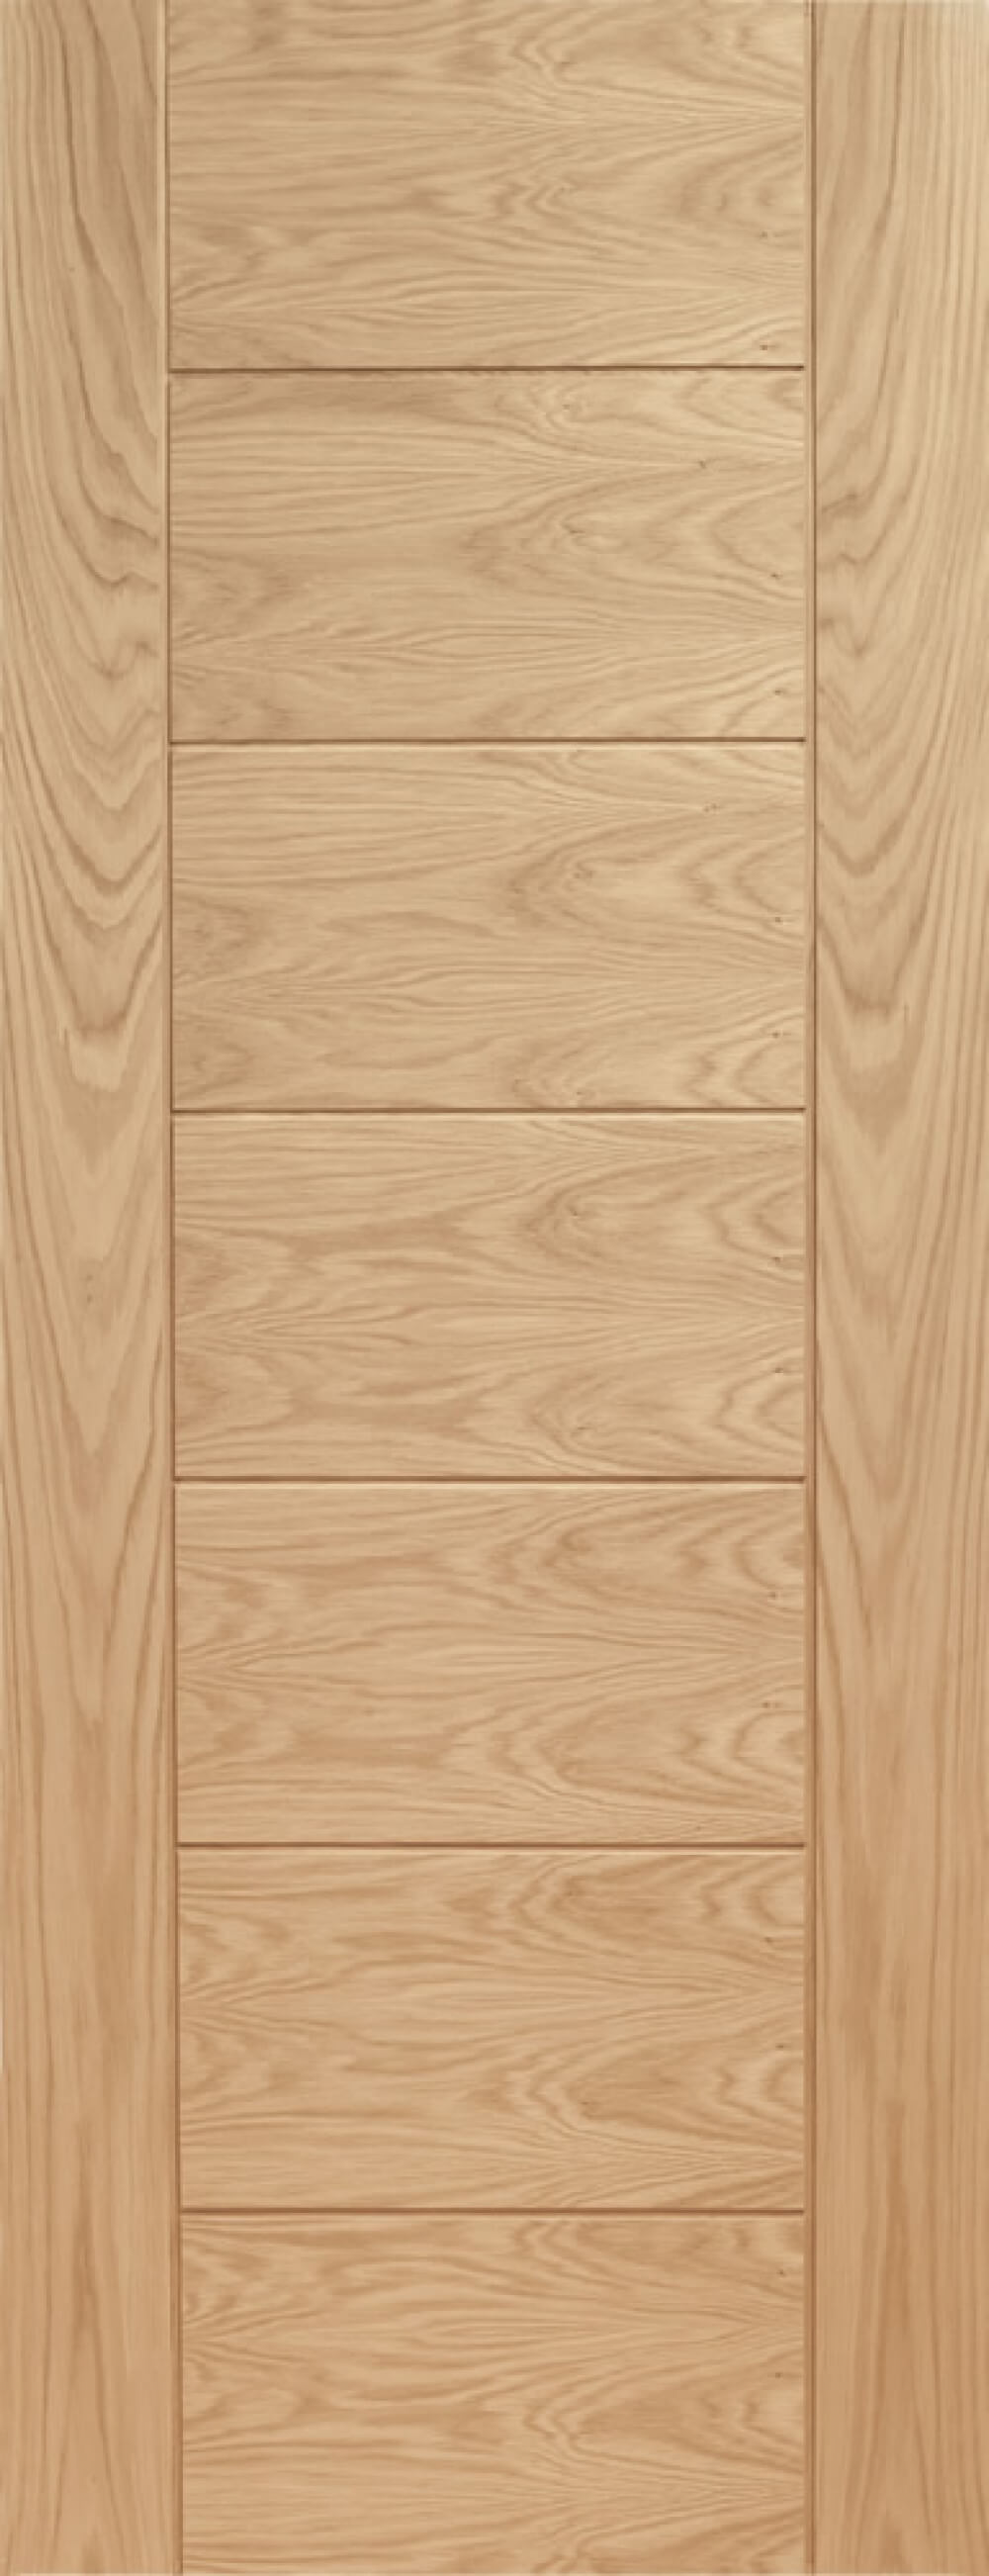 Palermo Oak Door   PREFINISHED